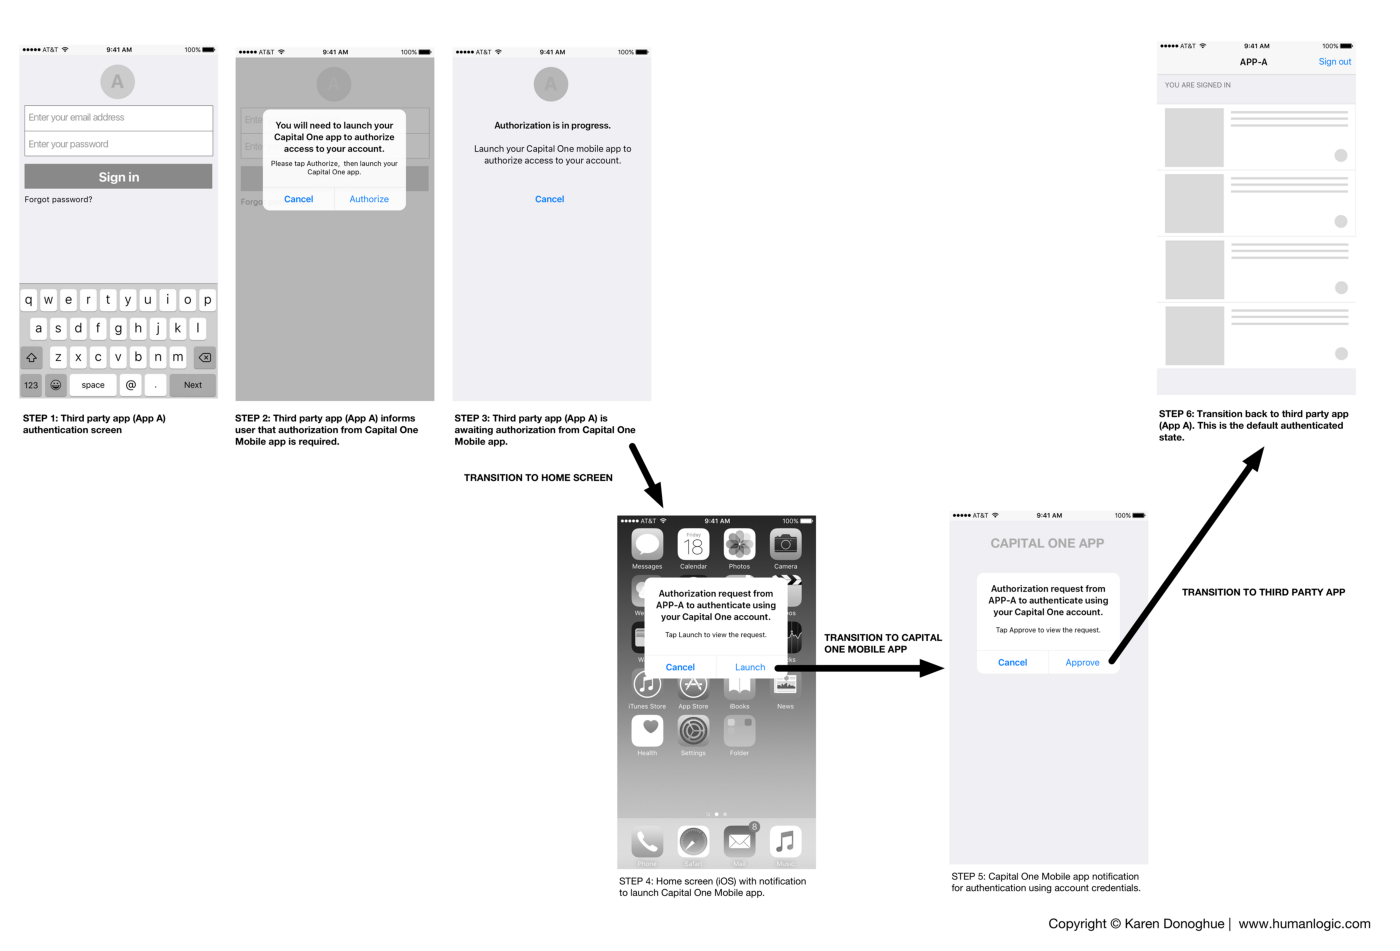 """Figure 1: An example end-user authentication flow for a third-party iOS app (""""App A"""") using the SwiftID two-factor authentication service. (Note: These are wireframe mockups for functional analysis only.)"""